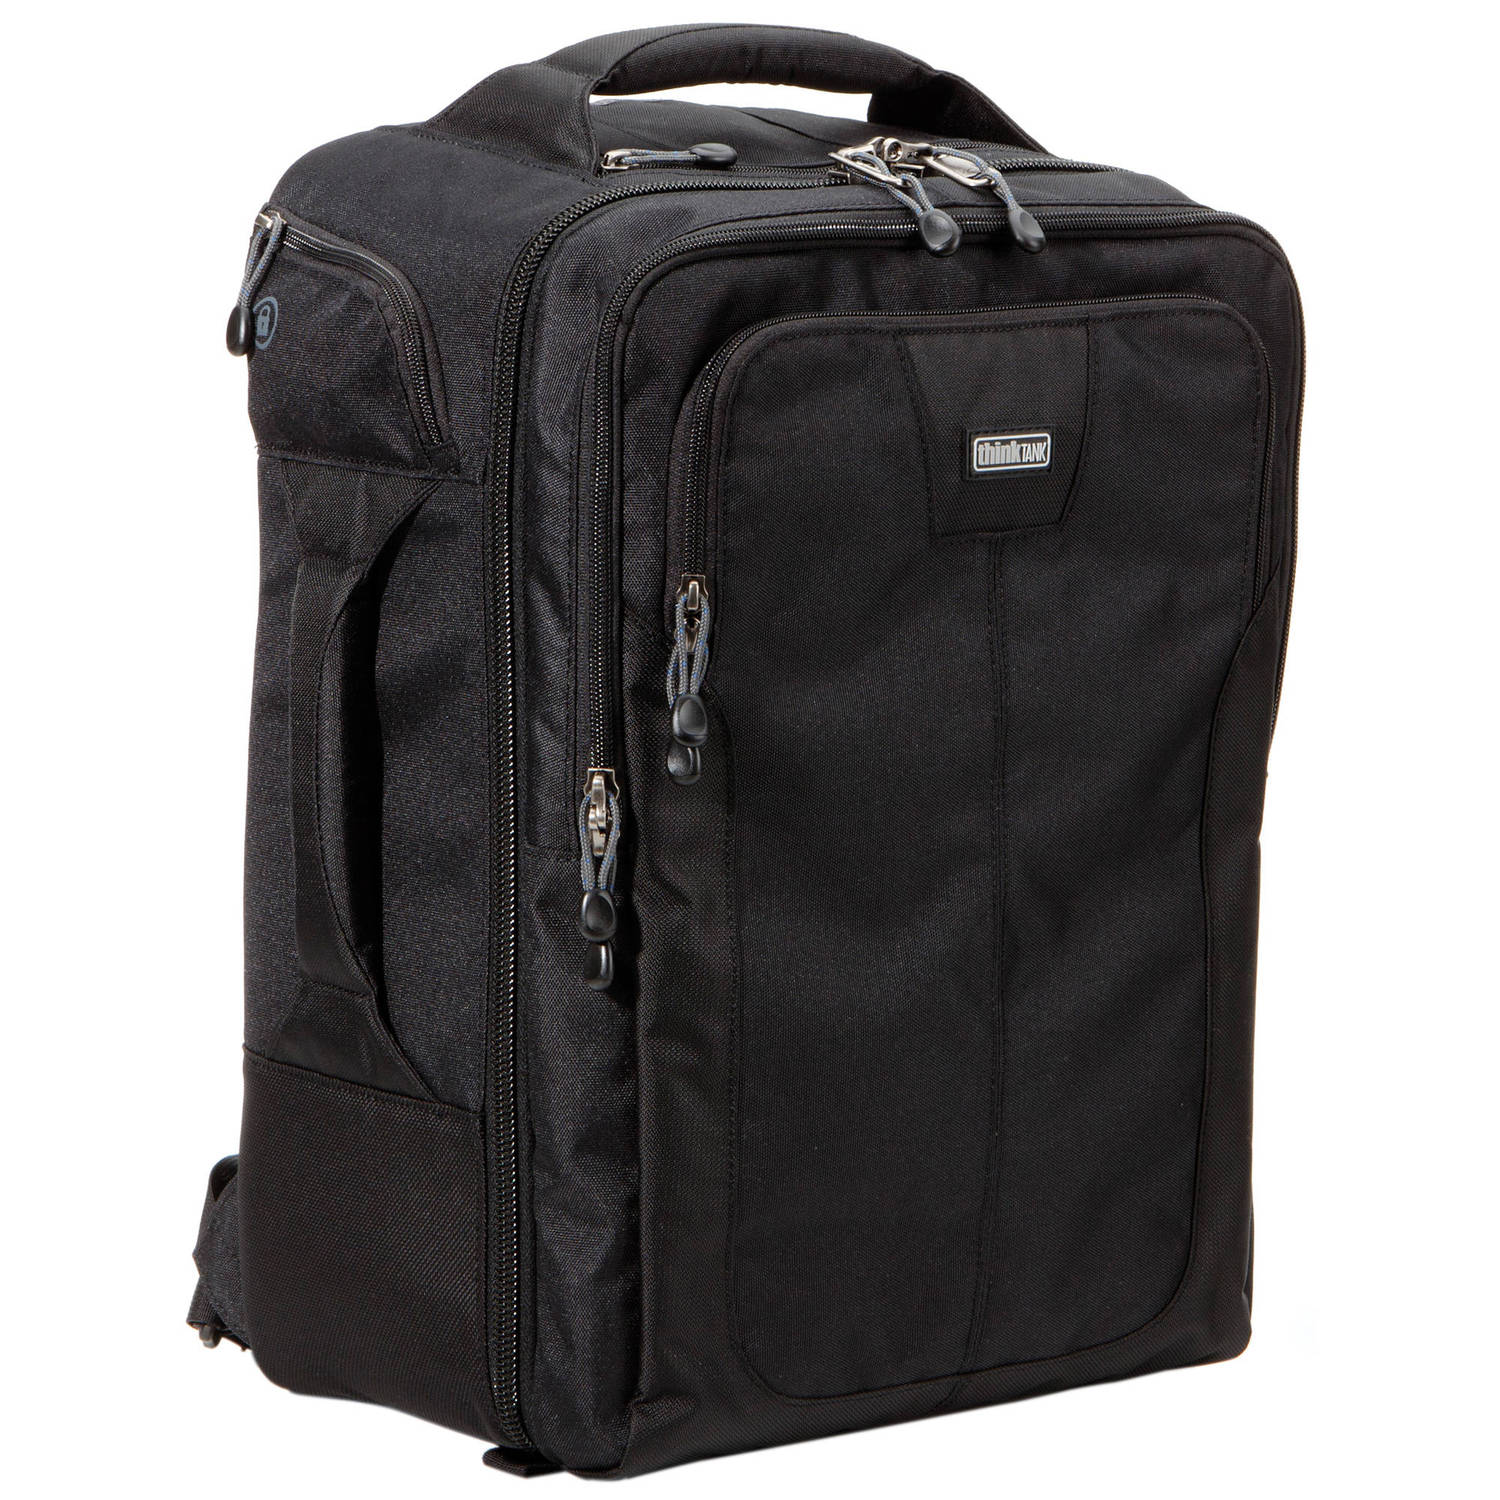 Think Tank Airport Commuter Backpack  (Black)